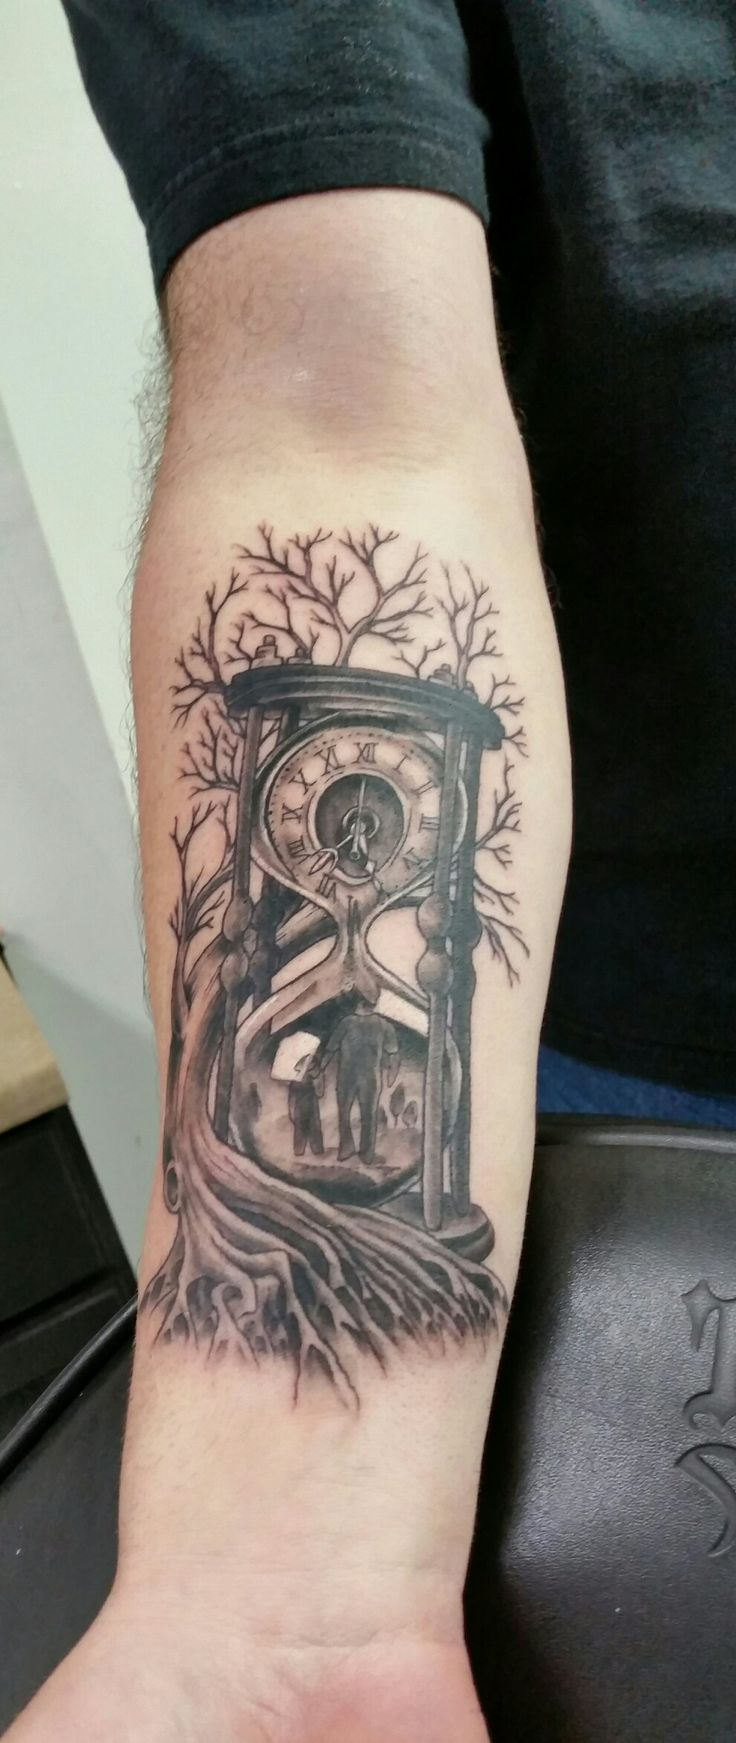 Pin eulen tattoo bedeutungen f on pinterest - Time Family Father And Son Hour Glass Tree Roots